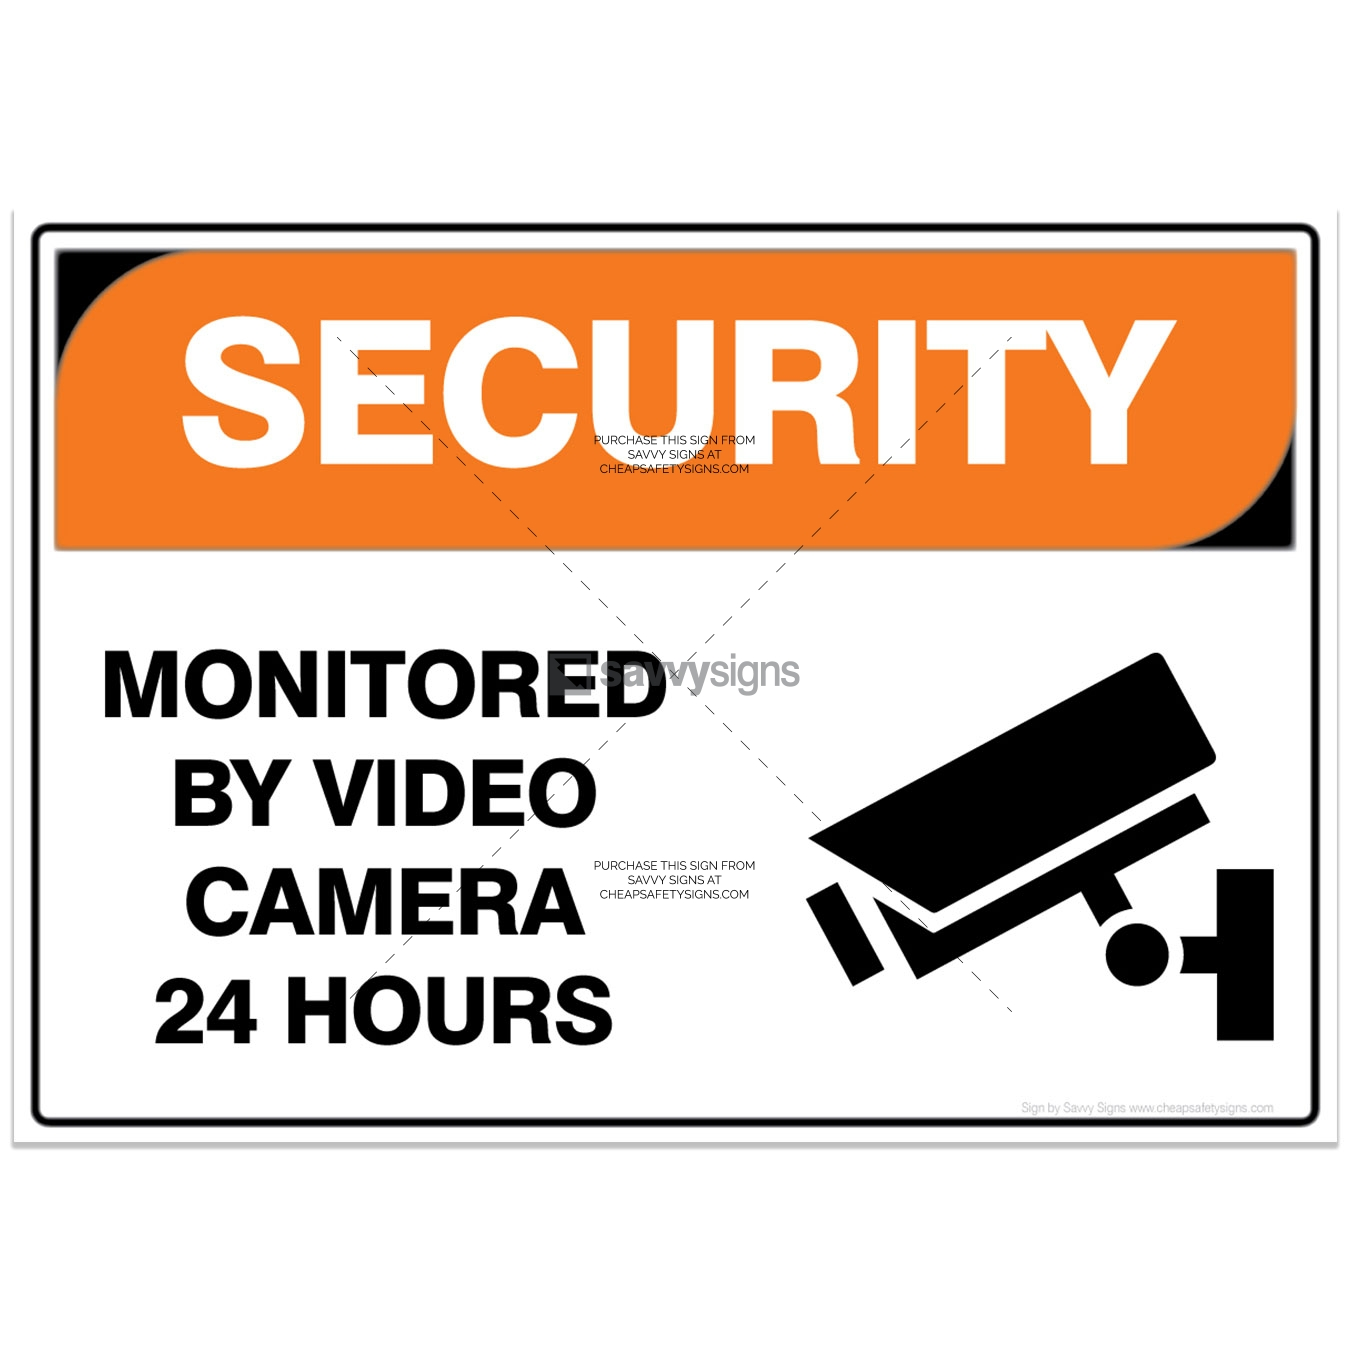 SSSEC3011-SECURITY-Workplace-Safety-Signs_Savvy-Signs_v3SSSEC3011-SECURITY-Workplace-Safety-Signs_Savvy-Signs_v3